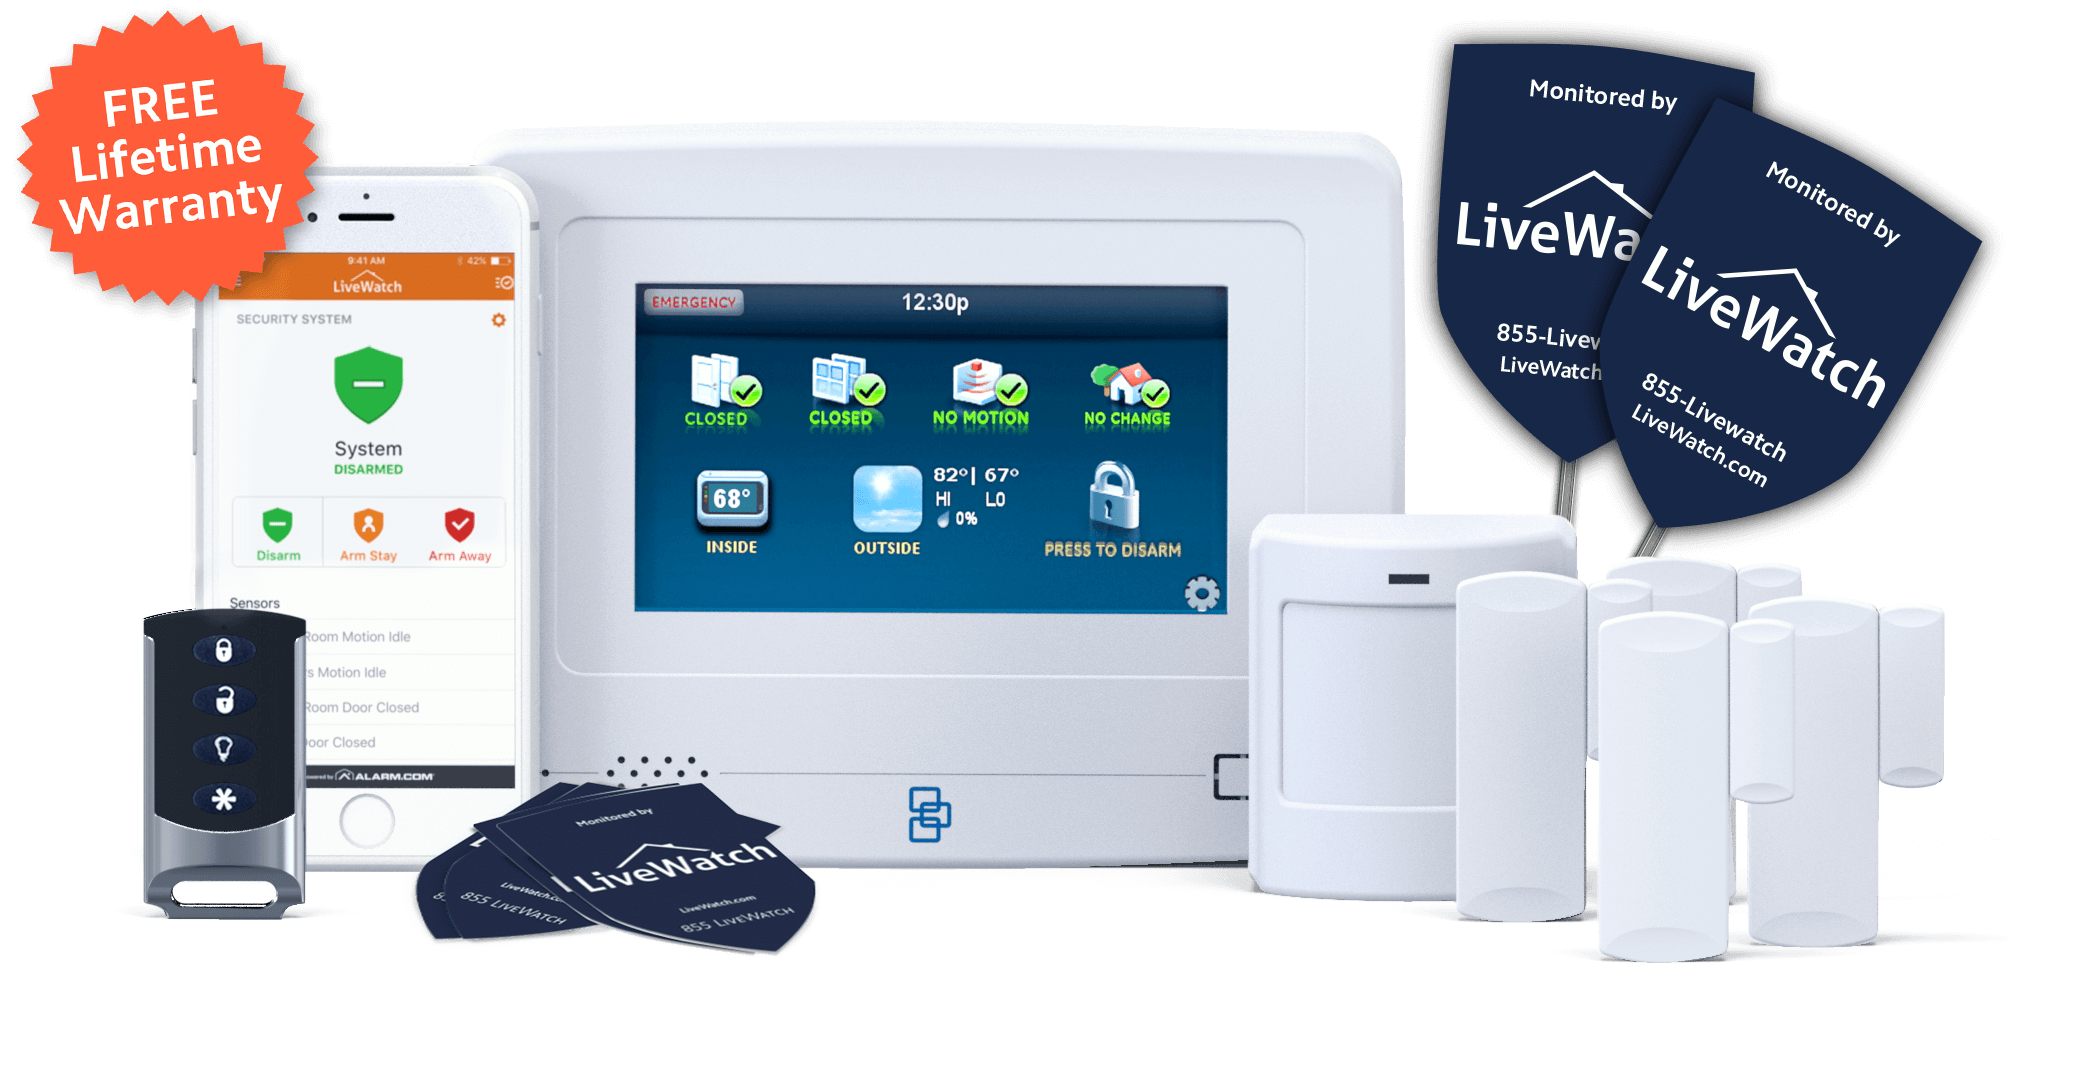 home security The safewise team has picked the 5 best homes security systems of 2018 compare prices, packages and equipment of top monitored smart home alarm systems from industry leaders like frontpoint, adt, vivint and more.